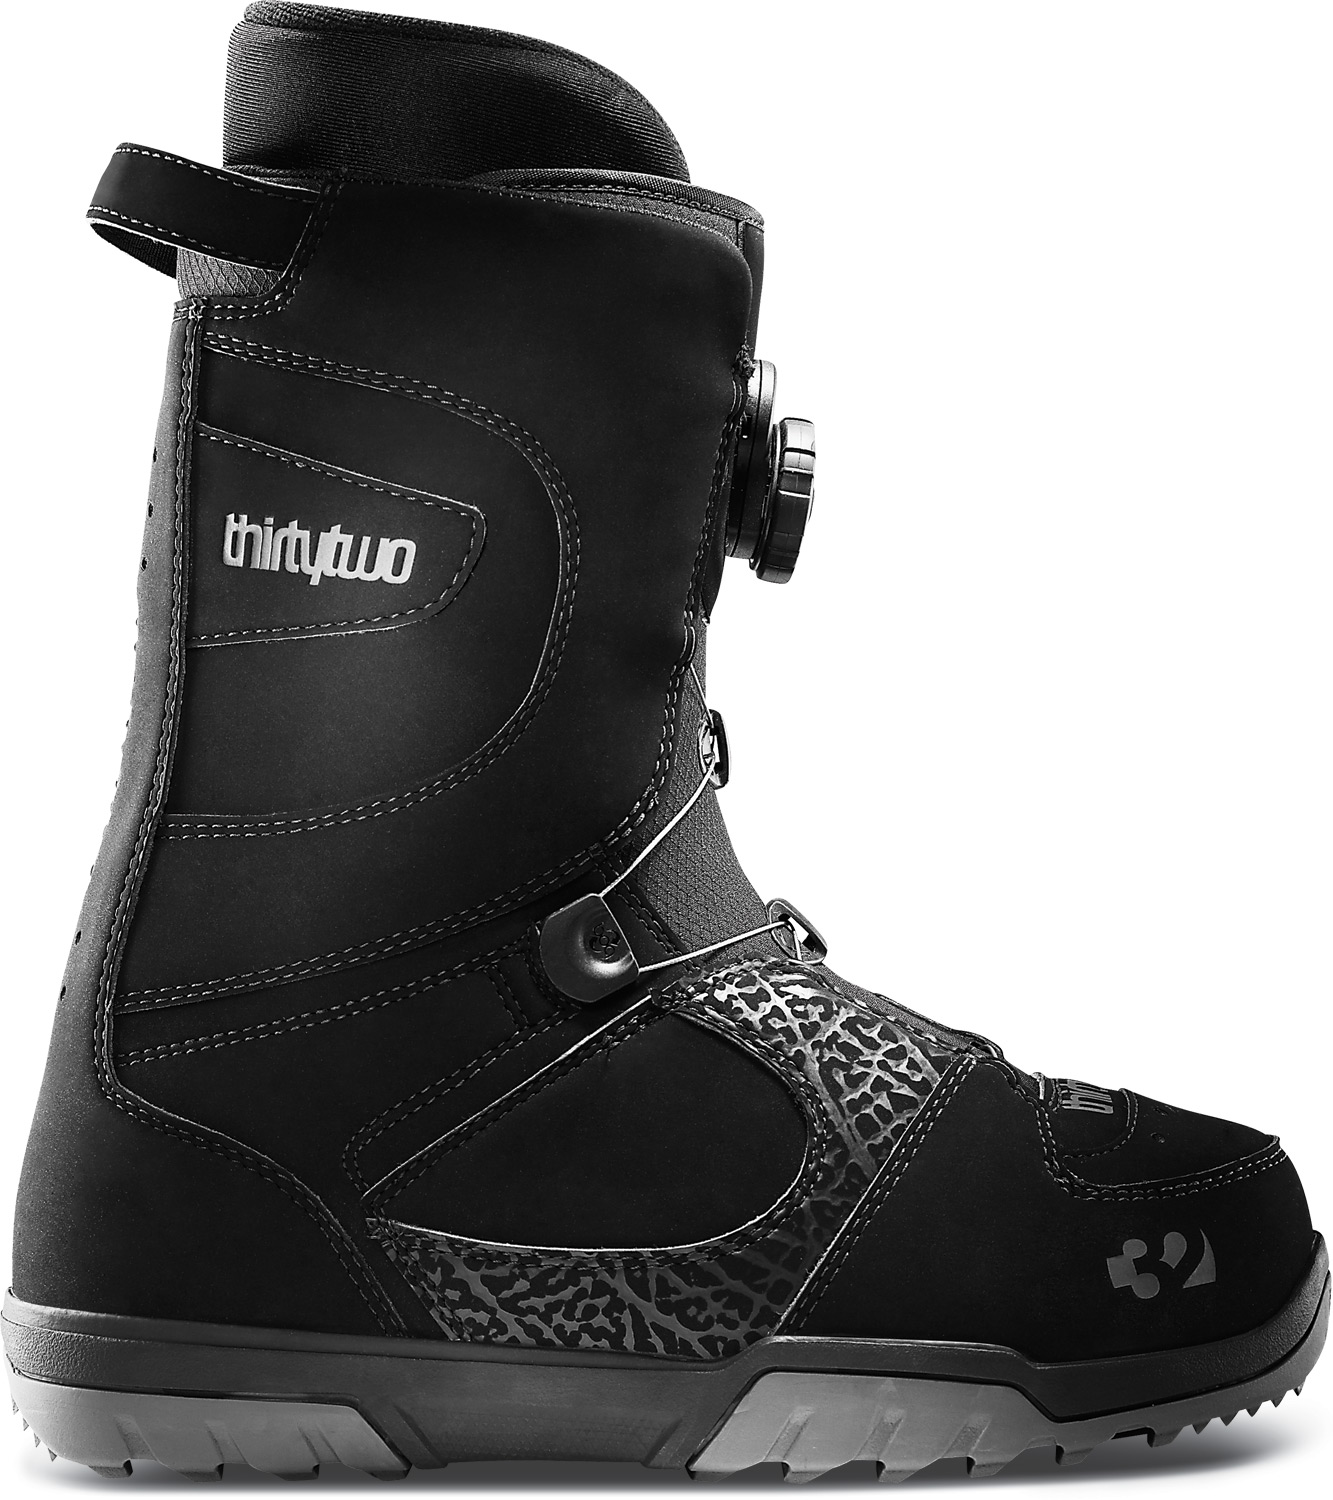 Snowboard This BOA classic has spun it's way into being one of our top 3 models.Key Features of the 32 - Thirty Two STW BOA Snowboard Boots: Comfort fit Level 2 Liner Level 1F Footbed Flex: 4/10 New BOA lacing system reel Rubber outsole with EVA cushioning Internal liner lacing system 3D molded tongue 100% heat moldable intuition ultralon liners - $125.95